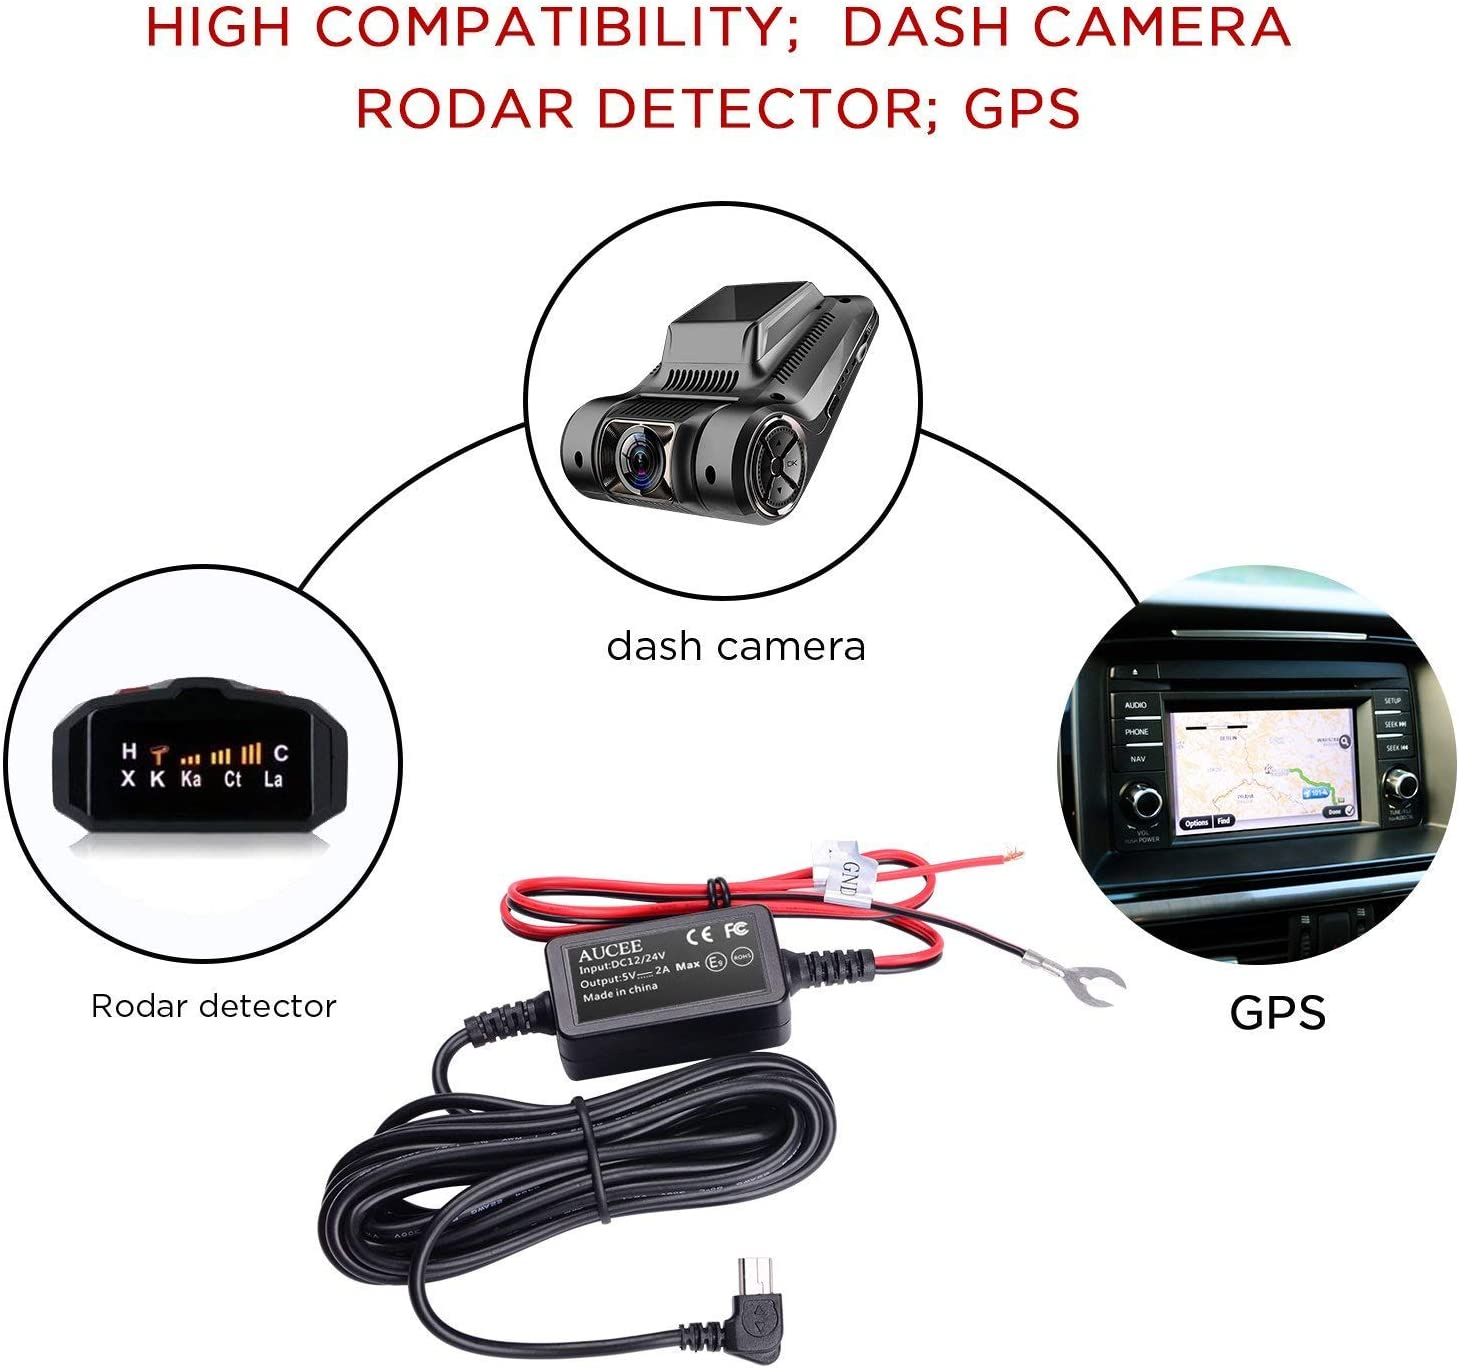 Mini USB Port,DC 12V AUCEE Dash Cam Hardwire kit 36V to 5V//2A Max Car Charger Cable kit with Fuse,Low Voltage Protection for Dash Cameras